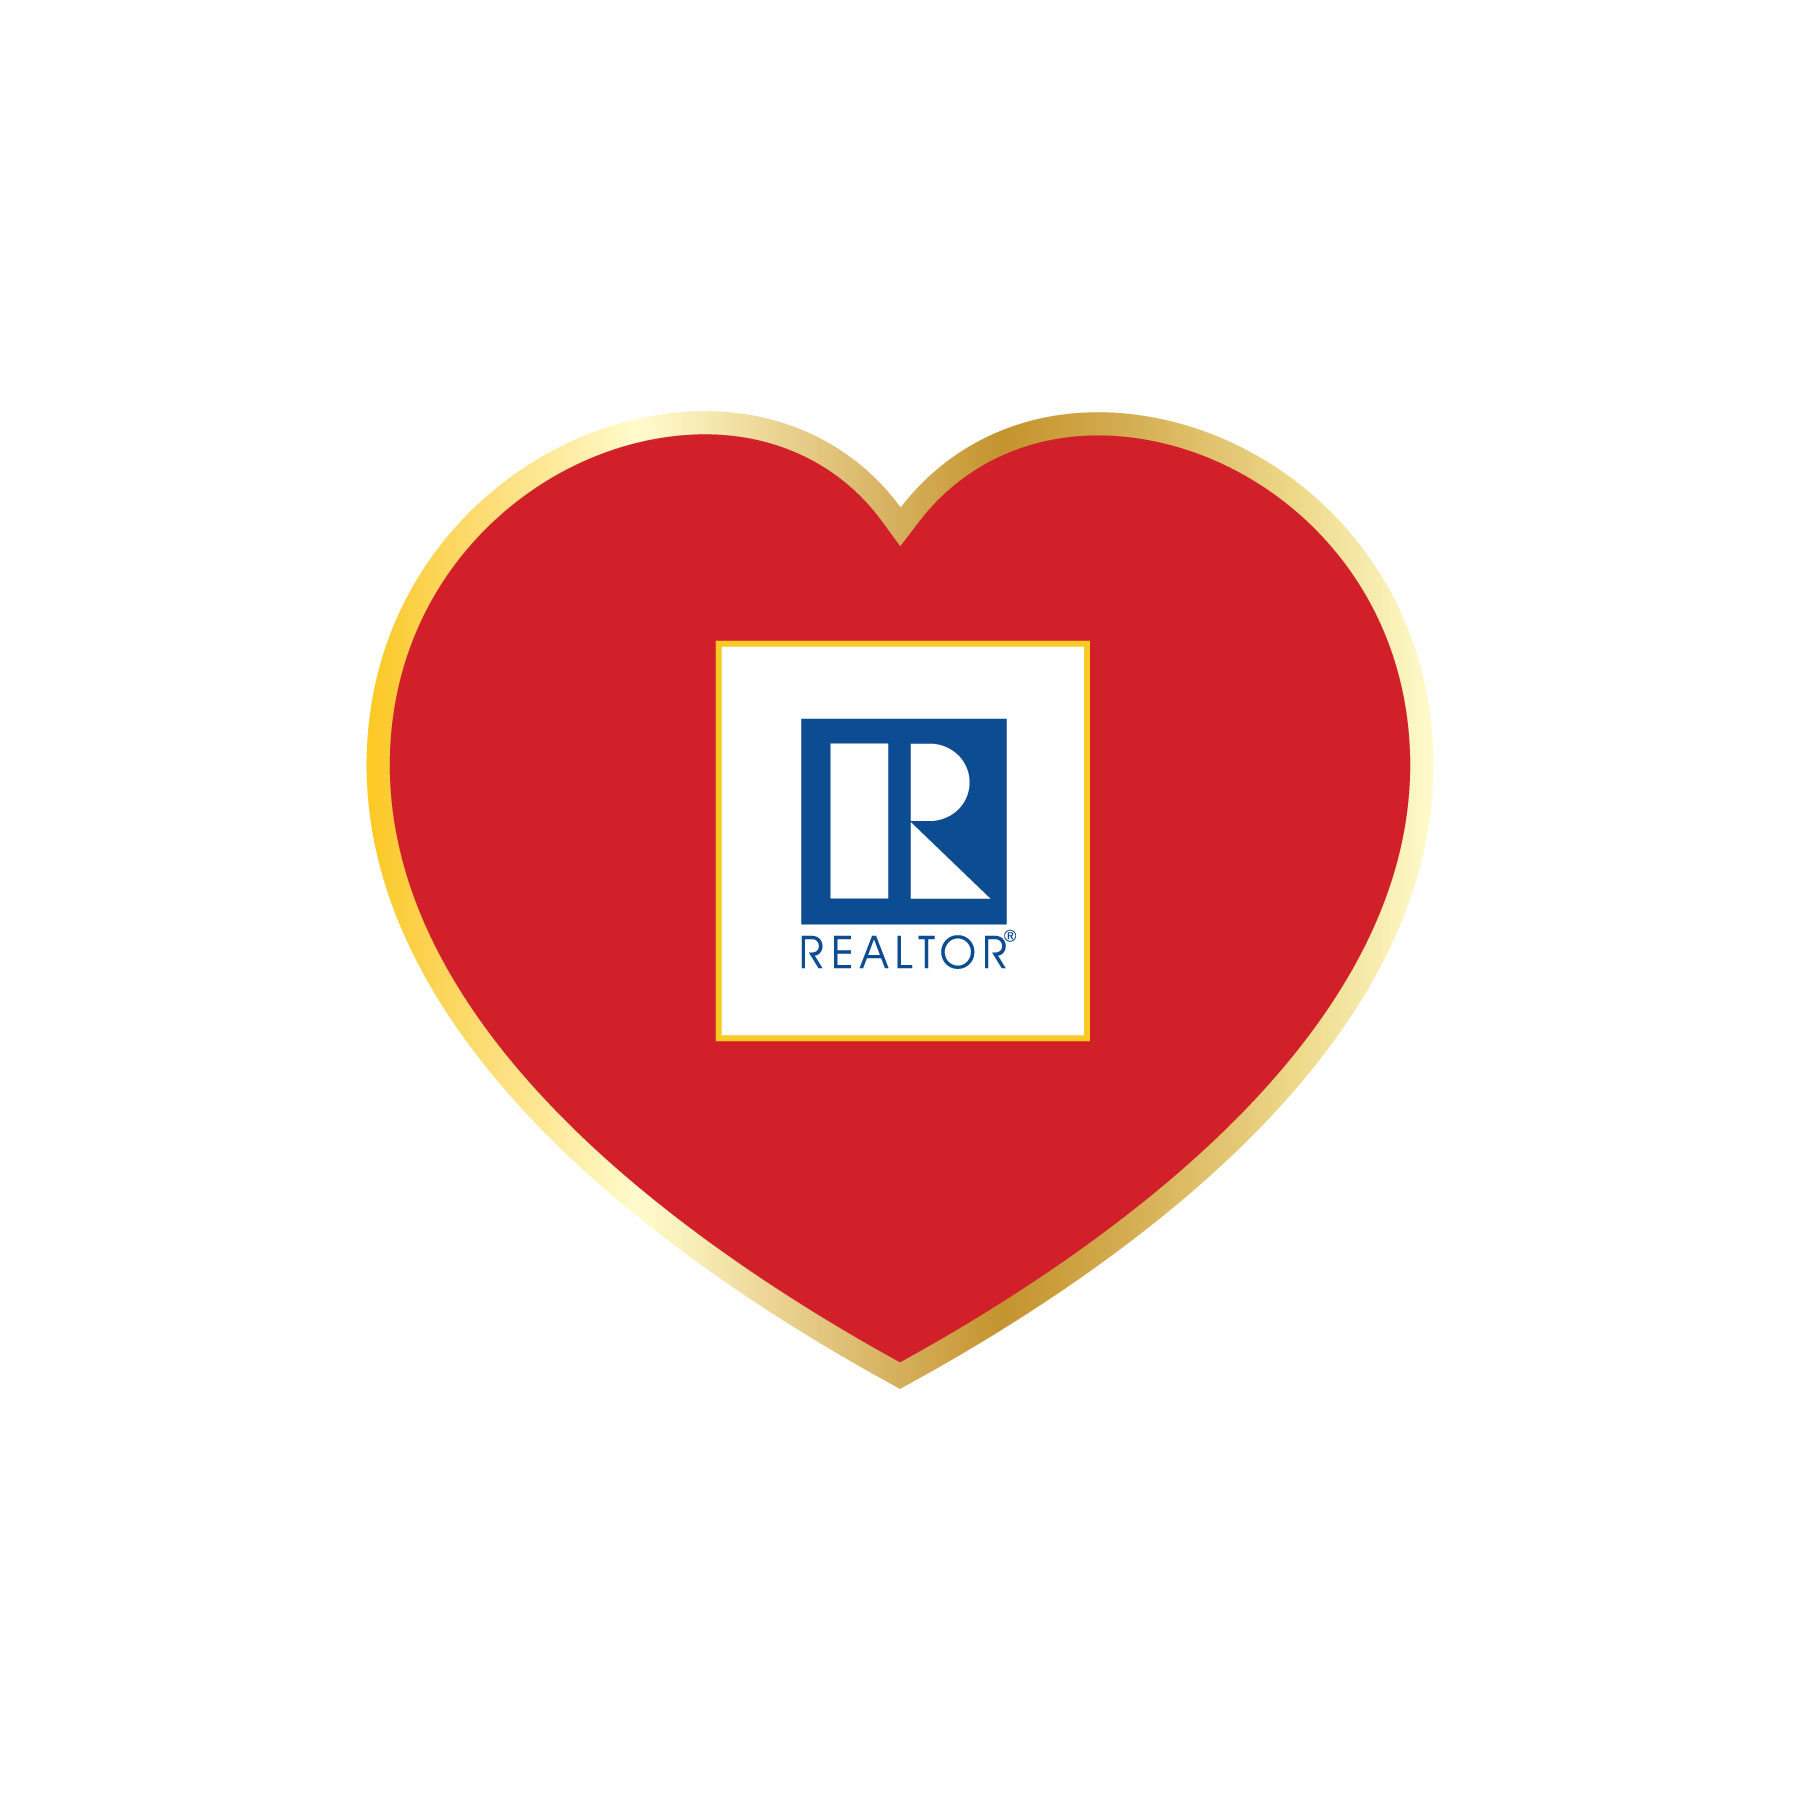 Illinois REALTORS® Celebrates Bicentennial Heart Pin